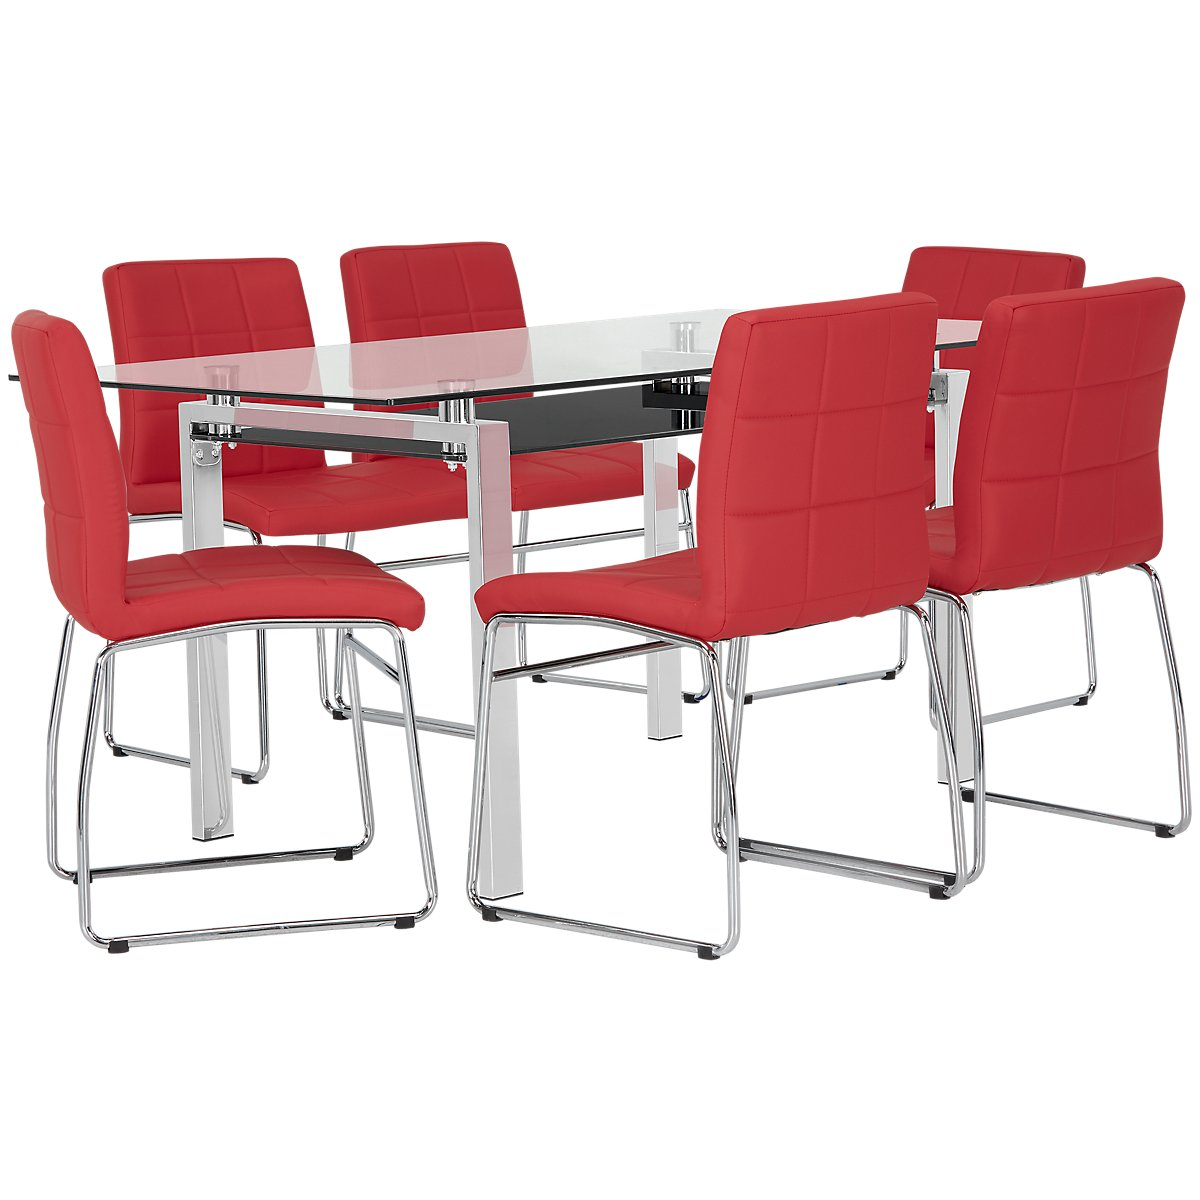 "Caleb Red 60"" Table & 4 Upholstered Chairs"